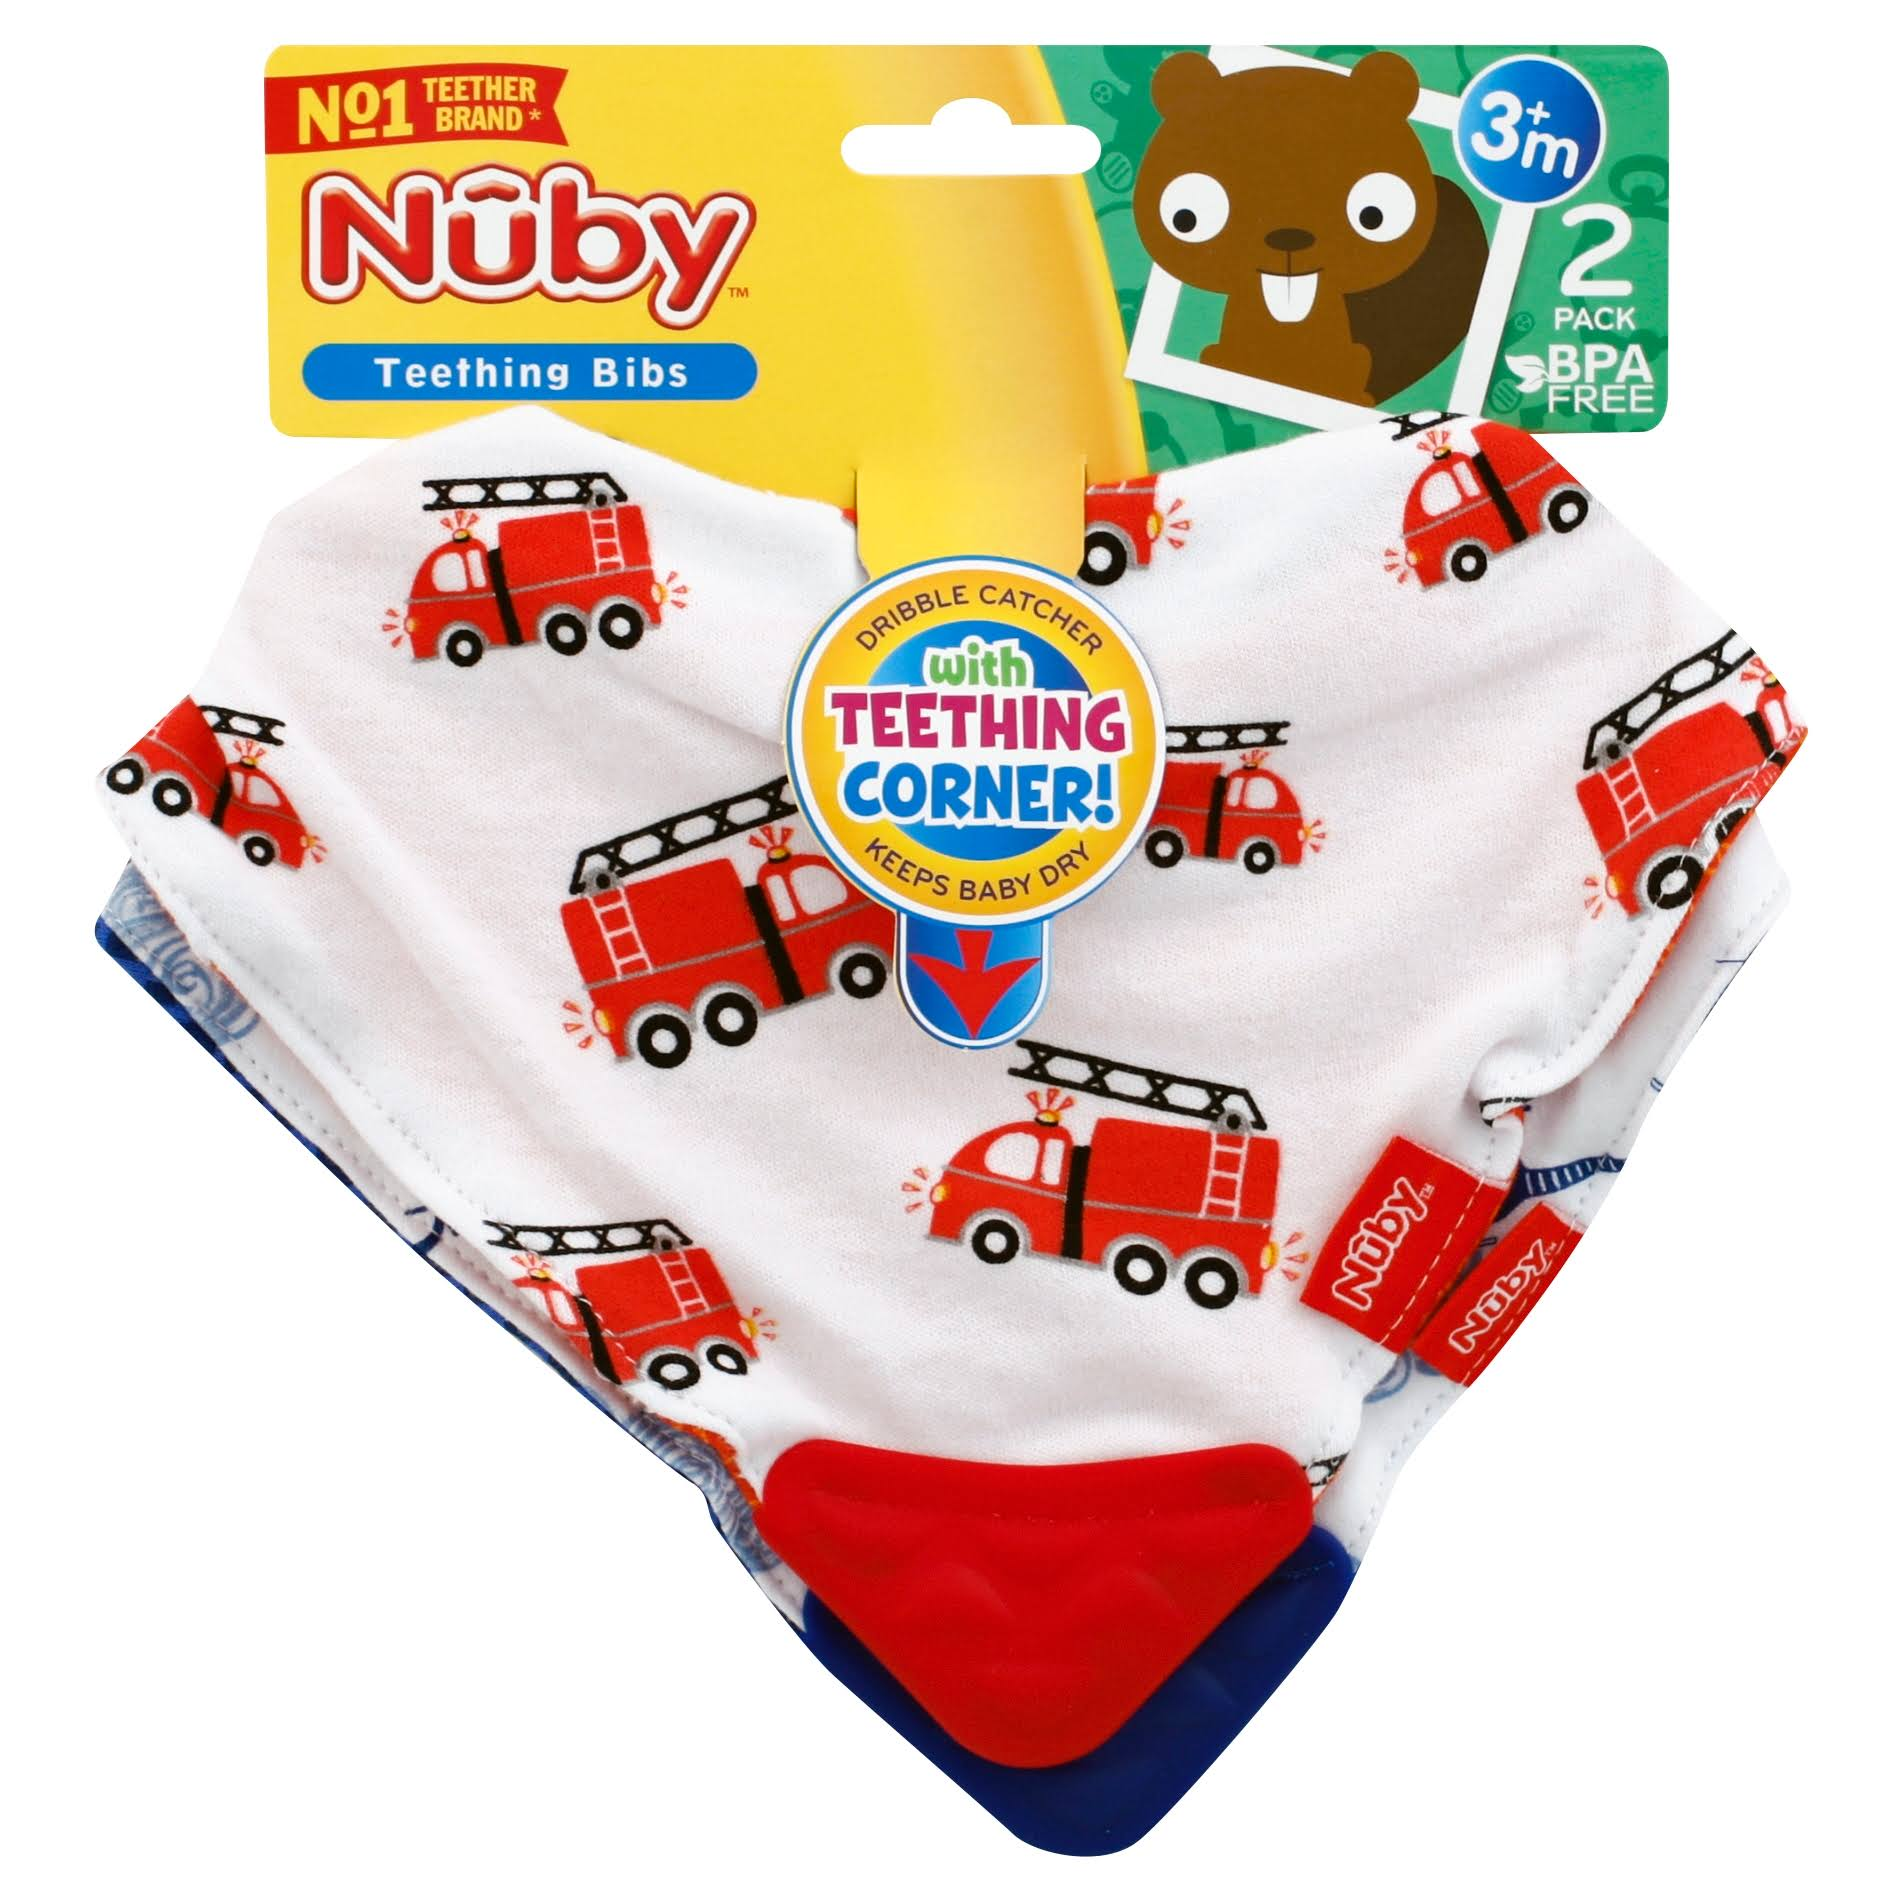 Nuby Teething Bibs, 3+ Months, 2 Pack - 2 bibs